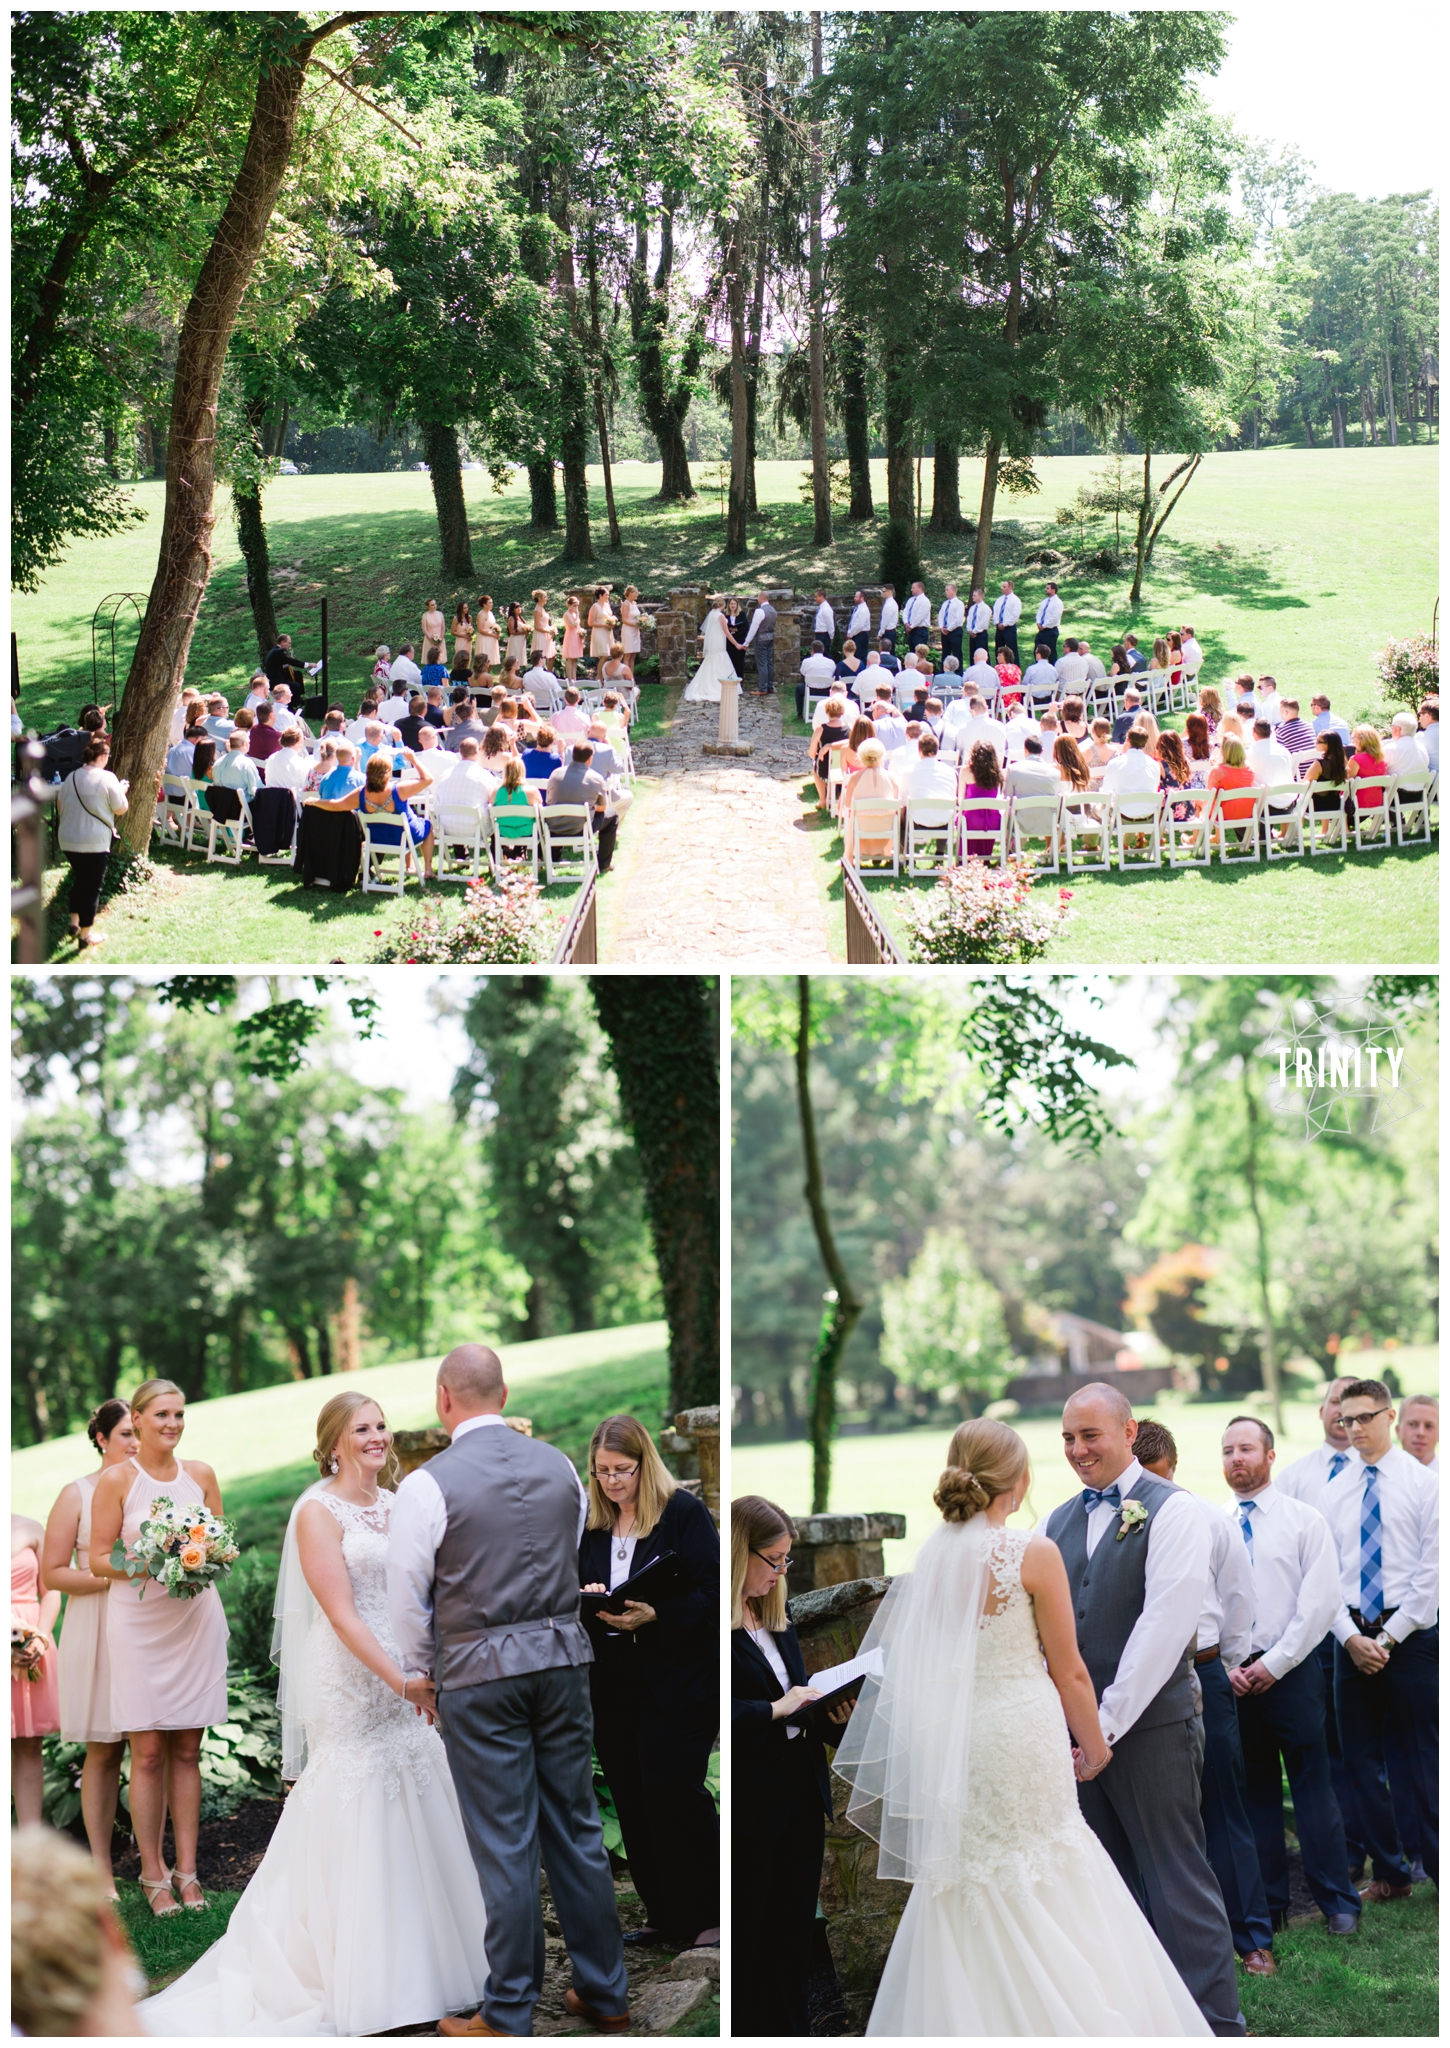 WISMAN-wedding-WEB-1405_WEBstomp.jpg